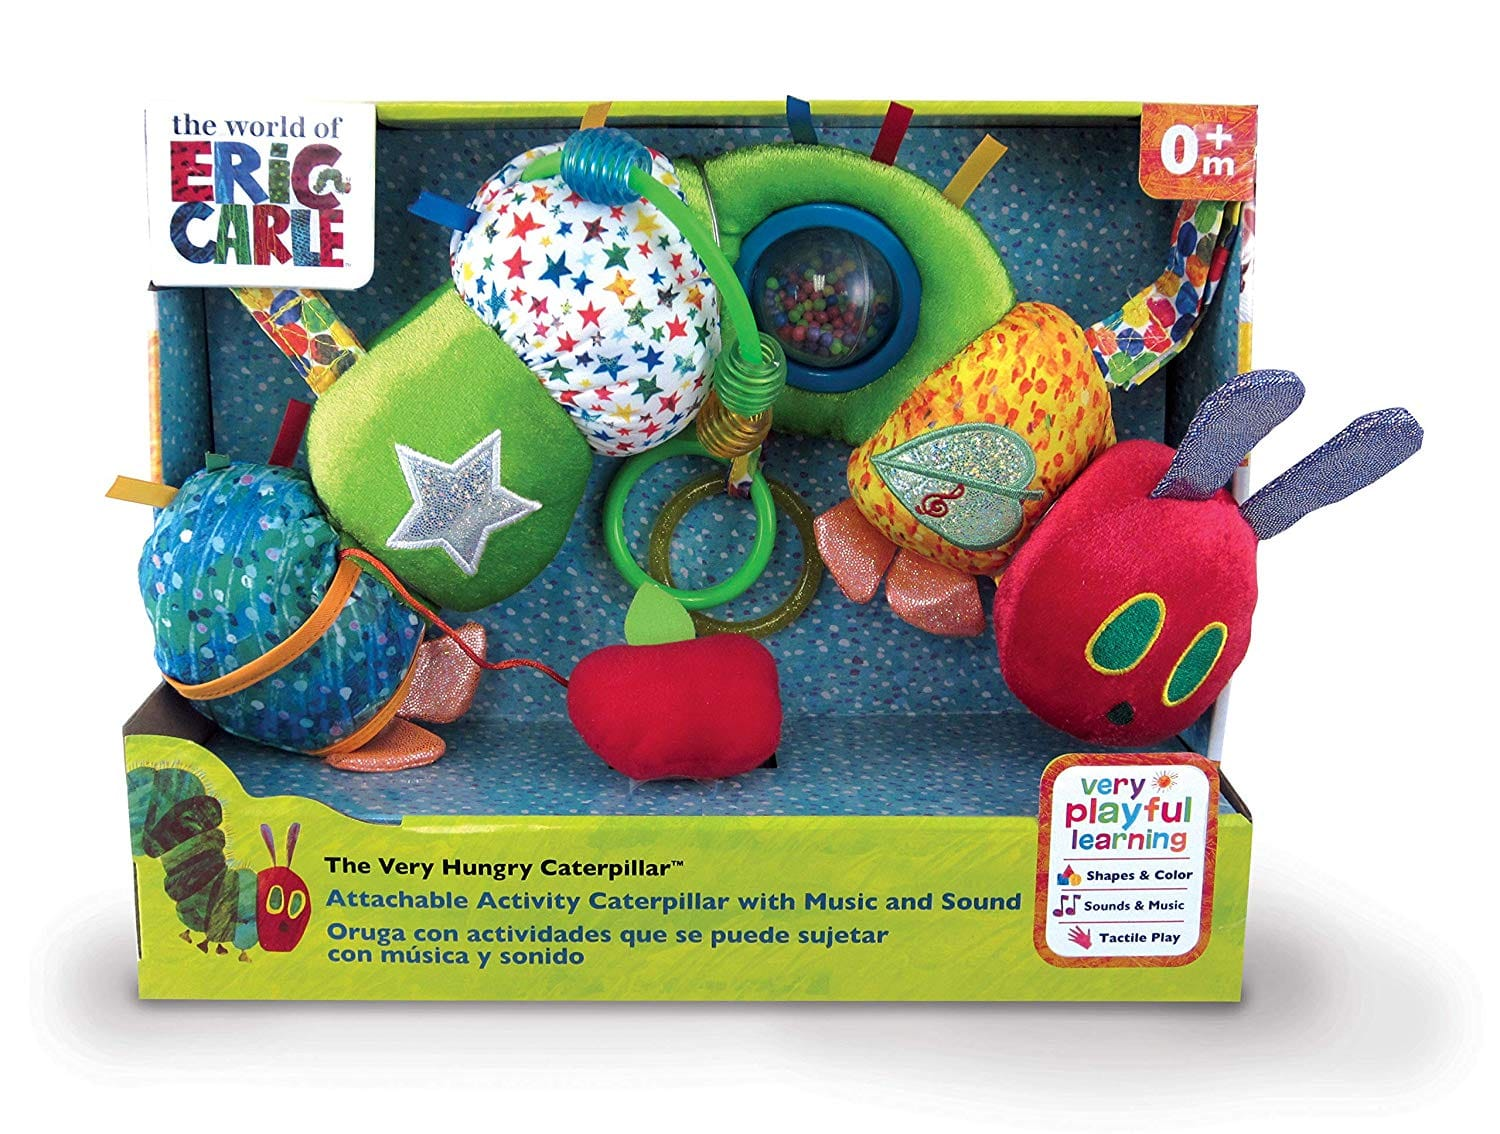 The Very Hungry Caterpillar Attachable Activity Caterpillar